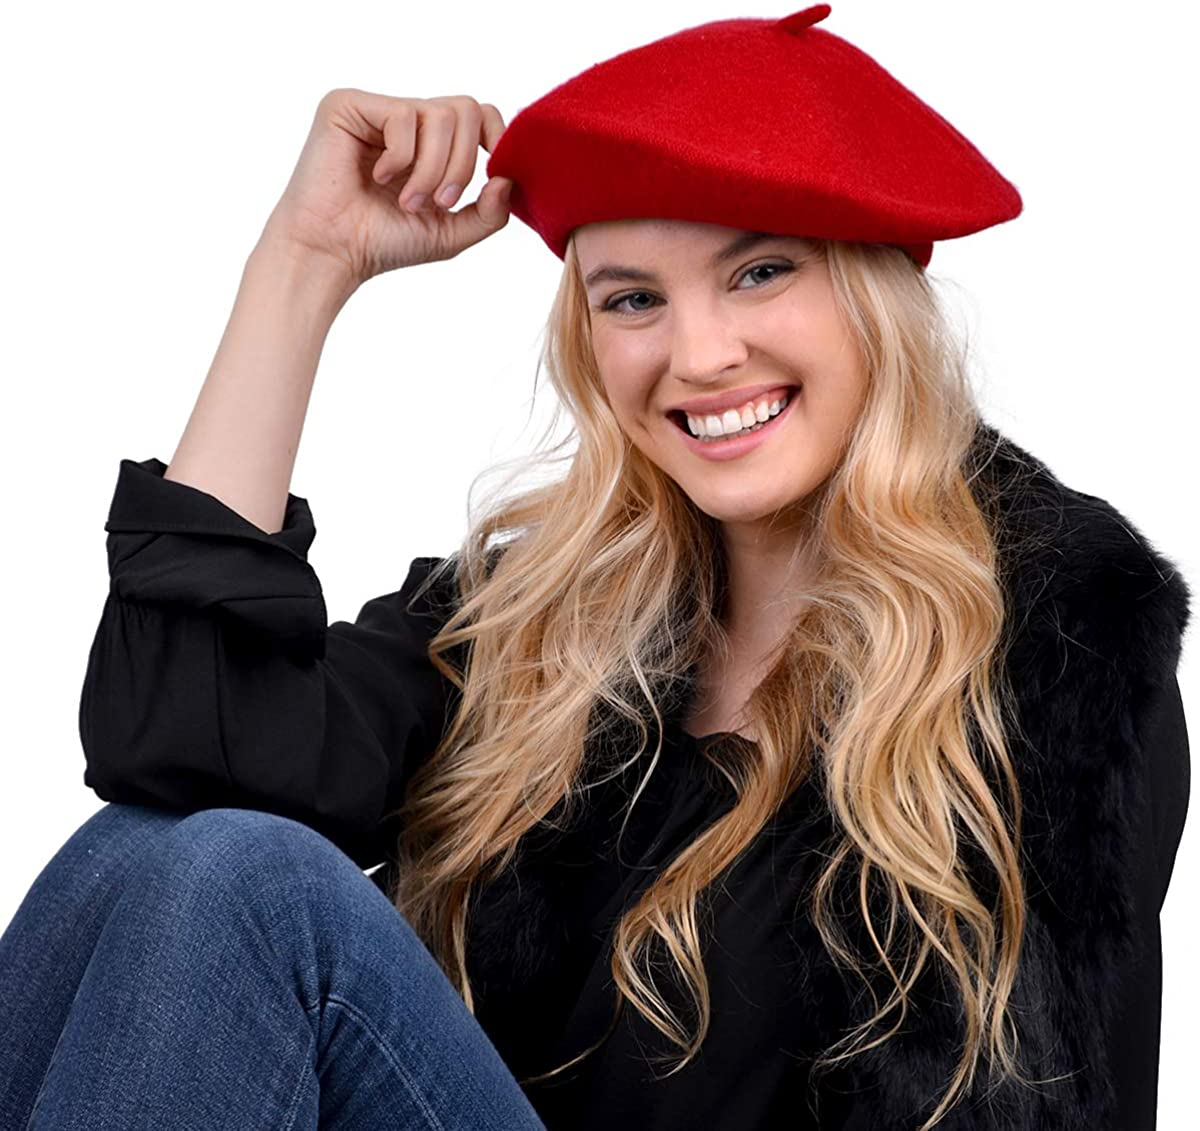 Nollia Ladies Solid Colored French Wool Beret Women's Classic Beret Hat for Casual Use - 1 Piece (Red)